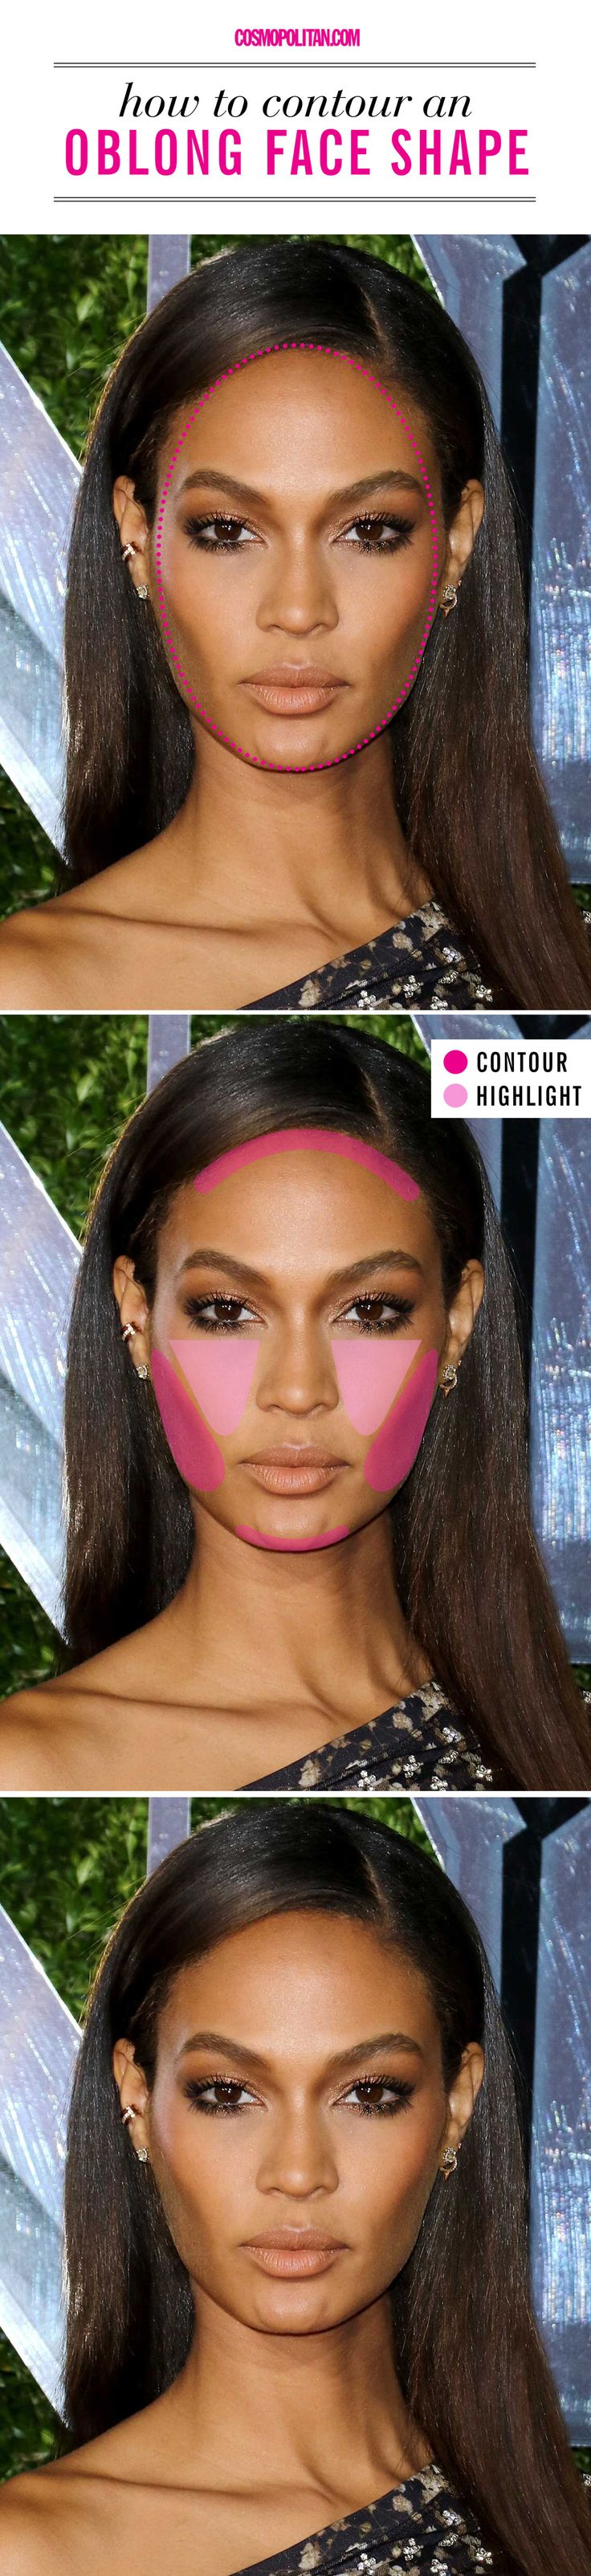 How to contour if you have an oblong face shape.